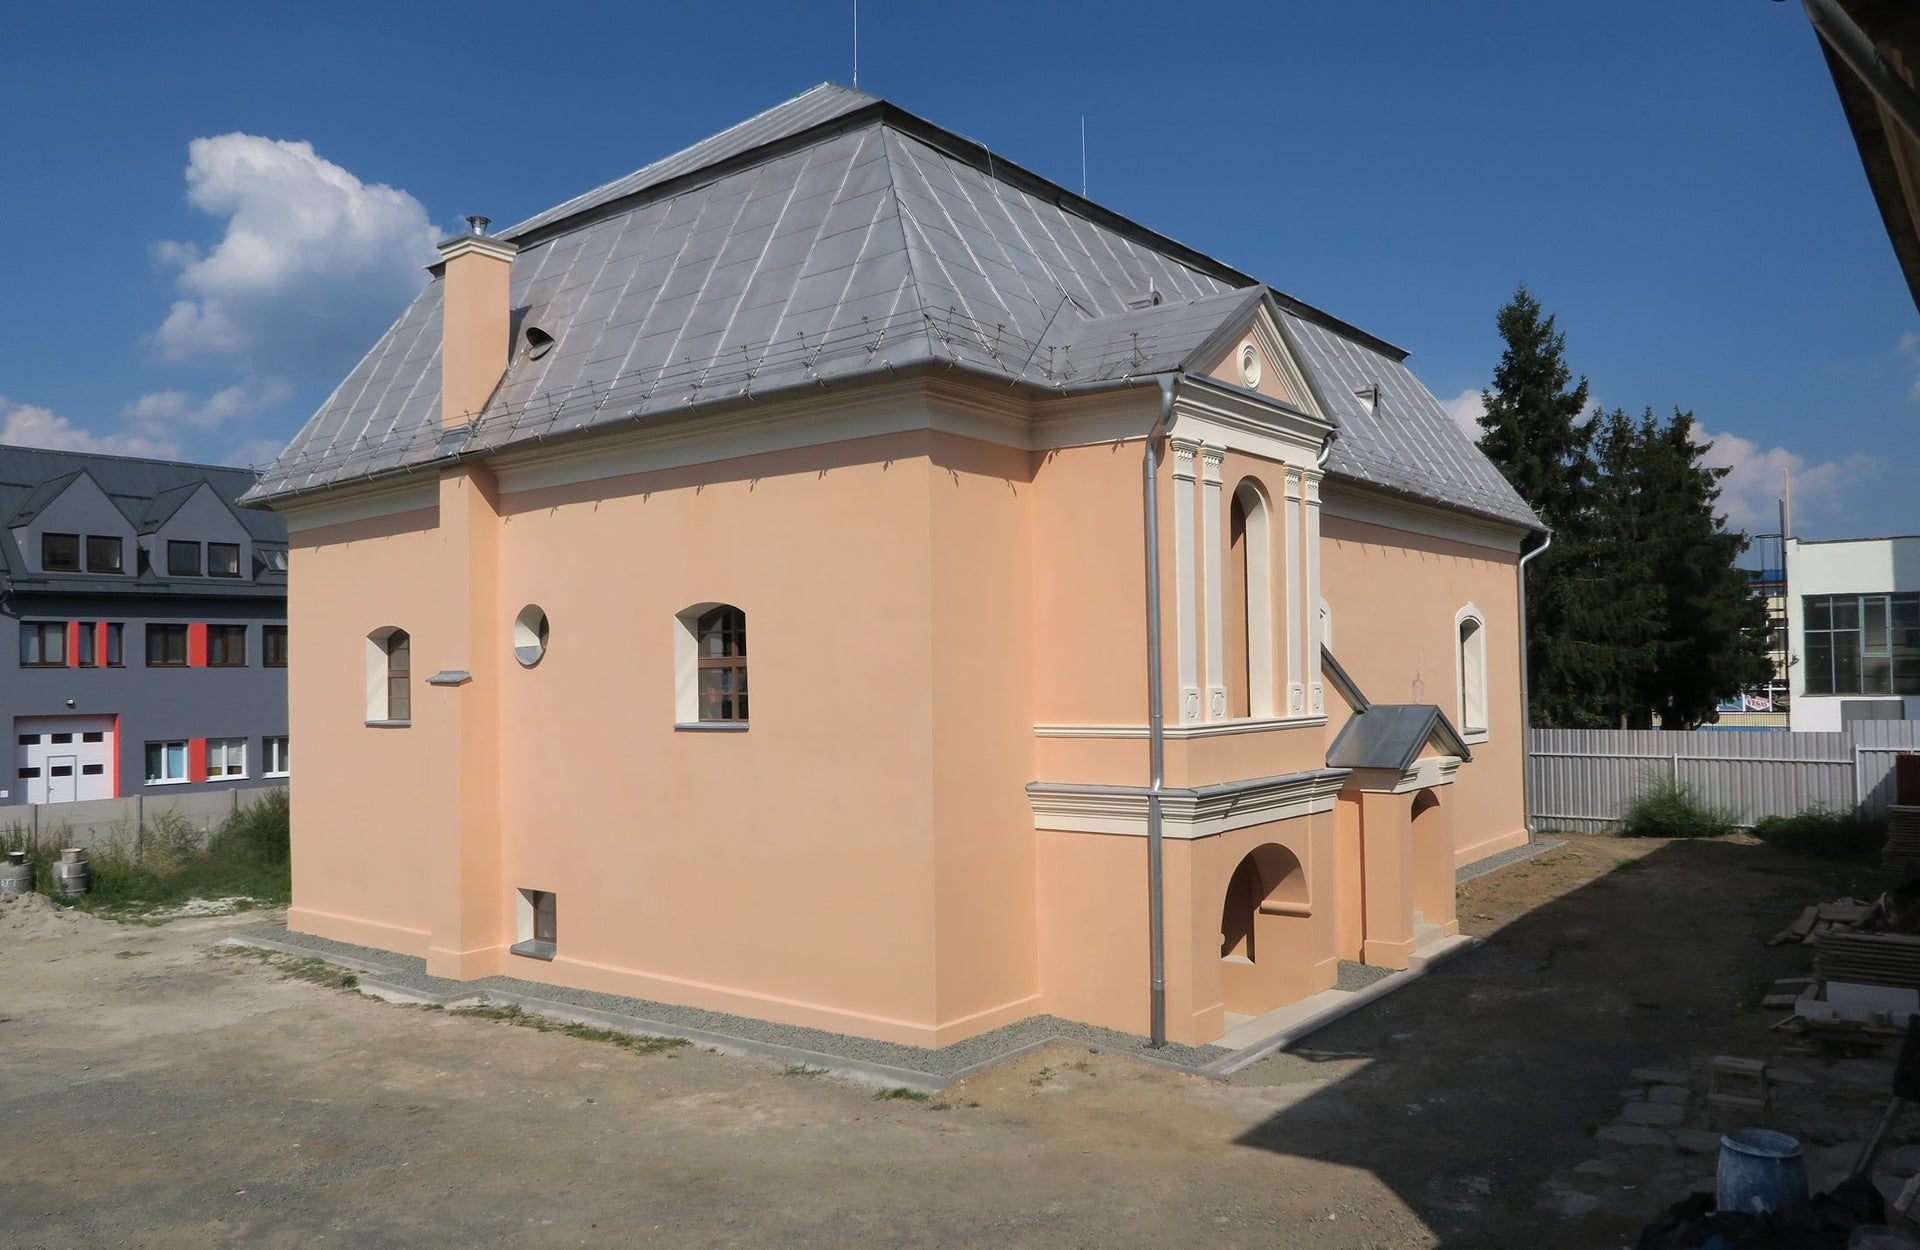 The Bardejov synagogue after the restoration project was completed, July 2017.